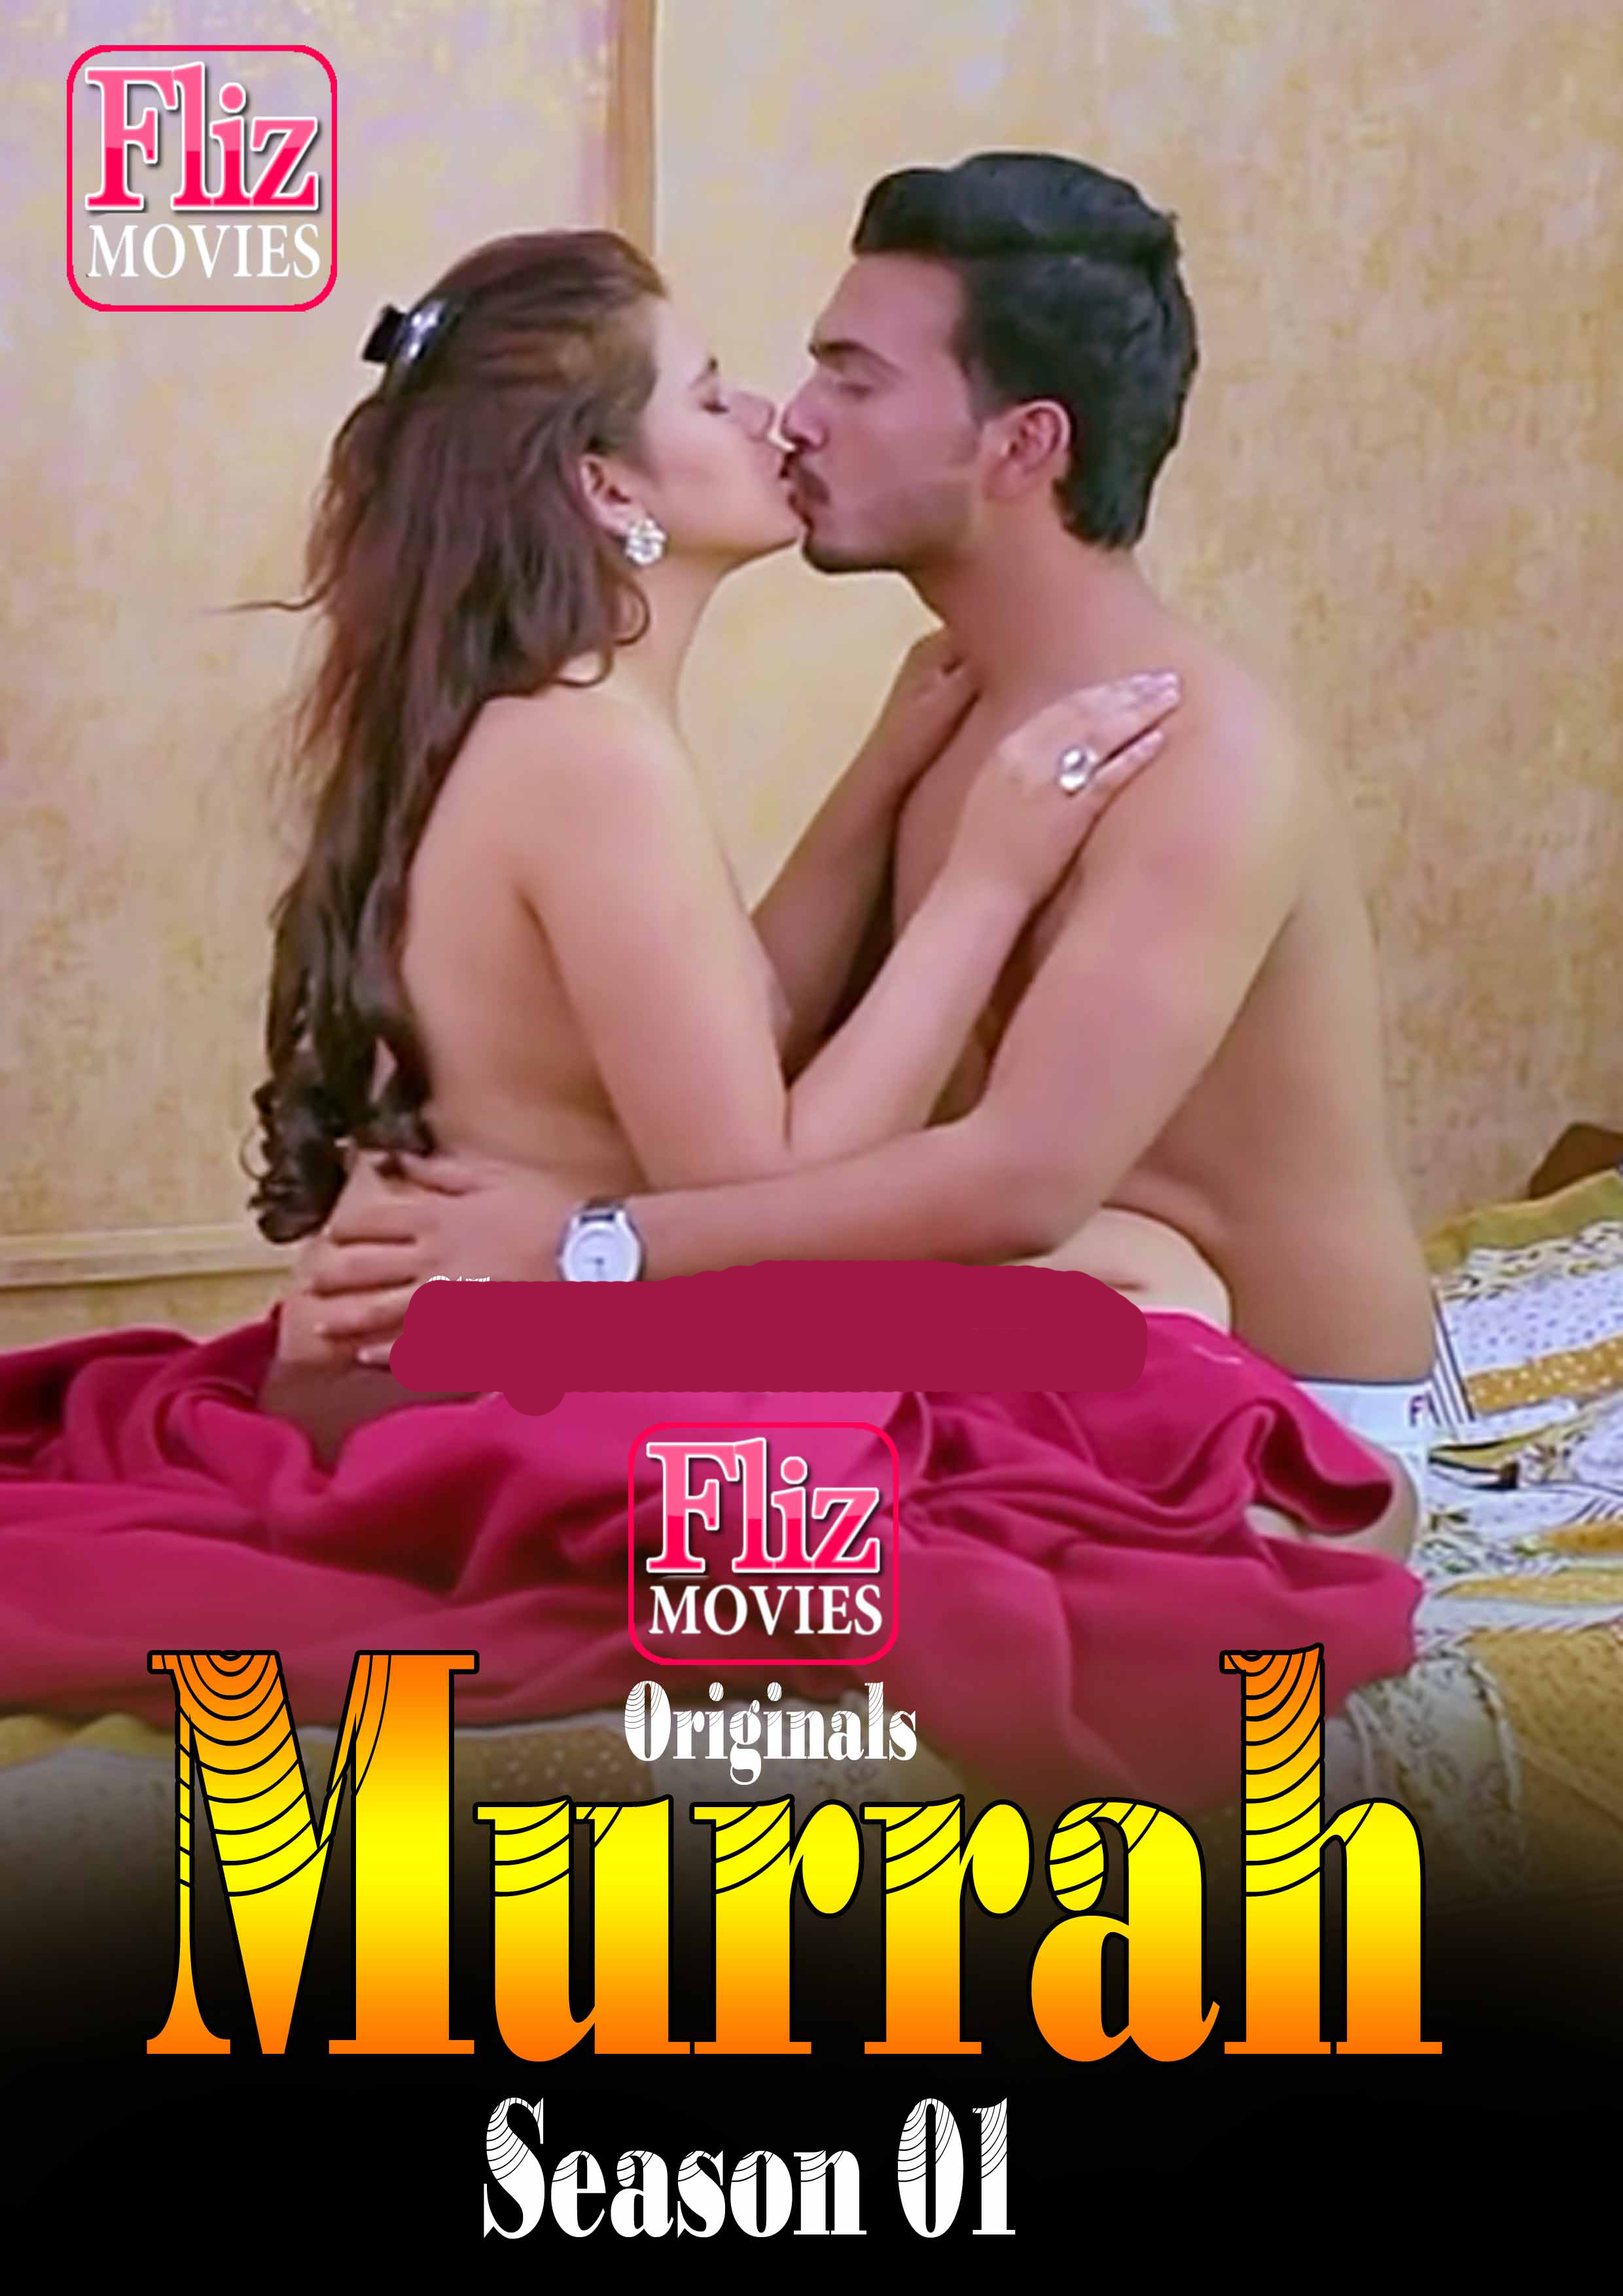 Murrah (2020) S01E03 Hindi Flizmovies Web Series 720p HDRip 200MB Download